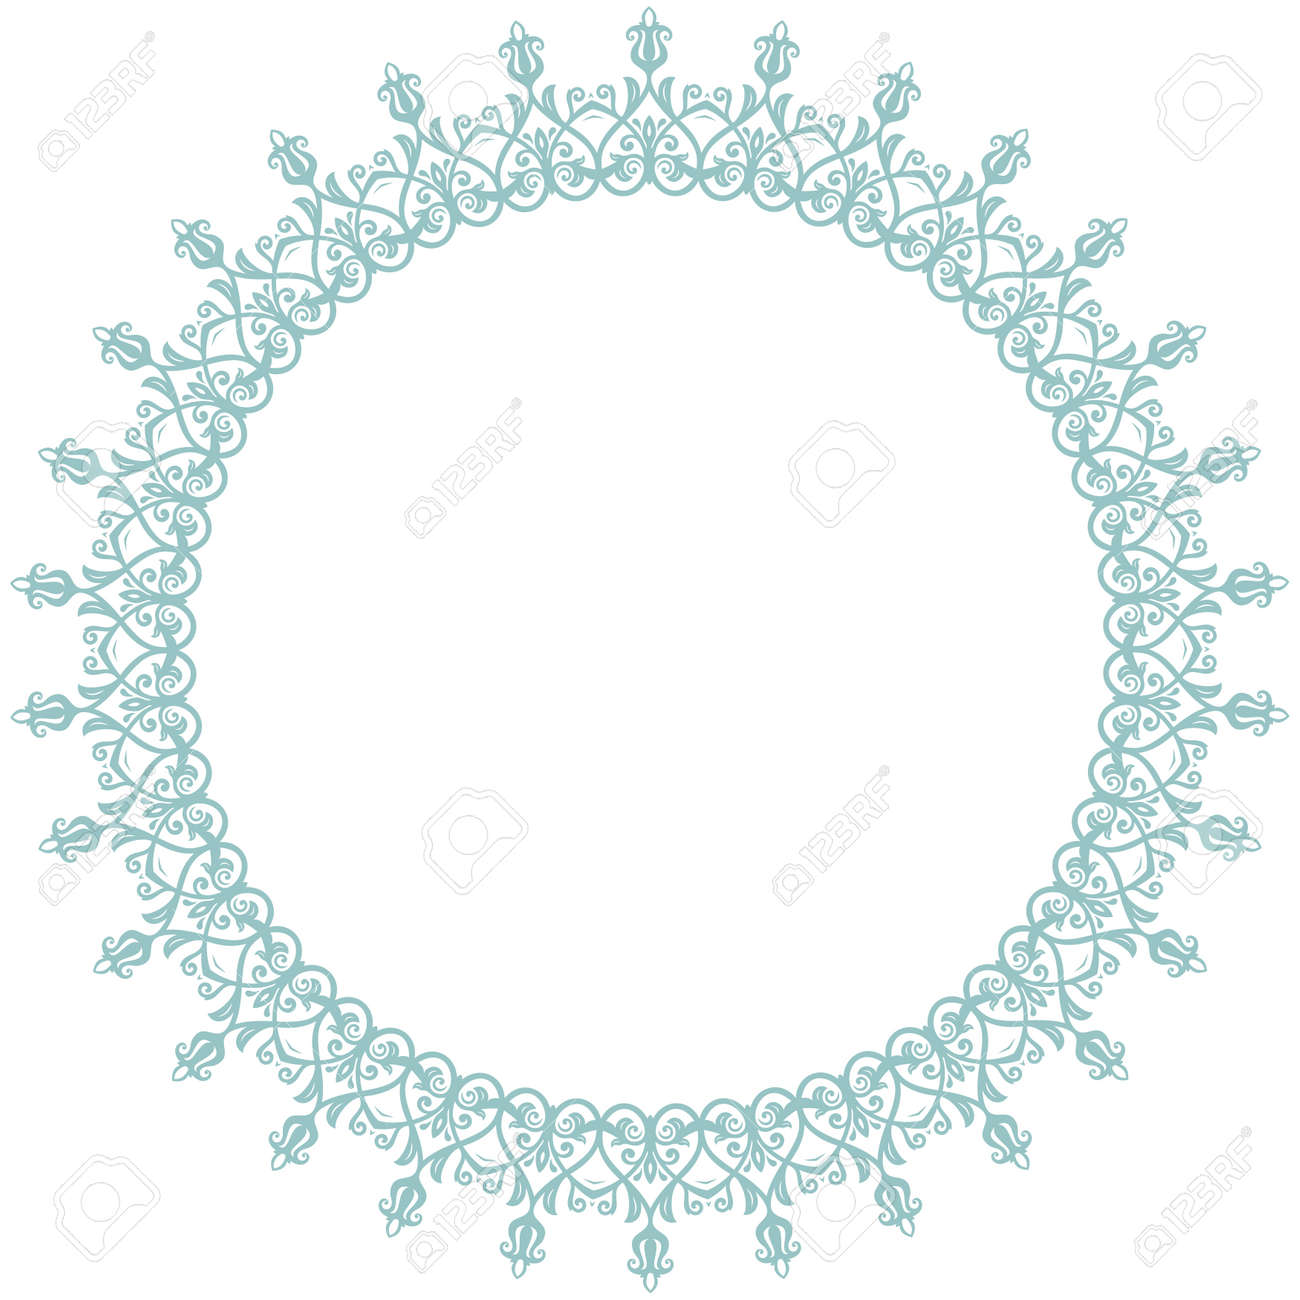 Oriental round frame with arabesques and floral elements. Floral border with blue vintage pattern. Greeting card with place for text - 167205904